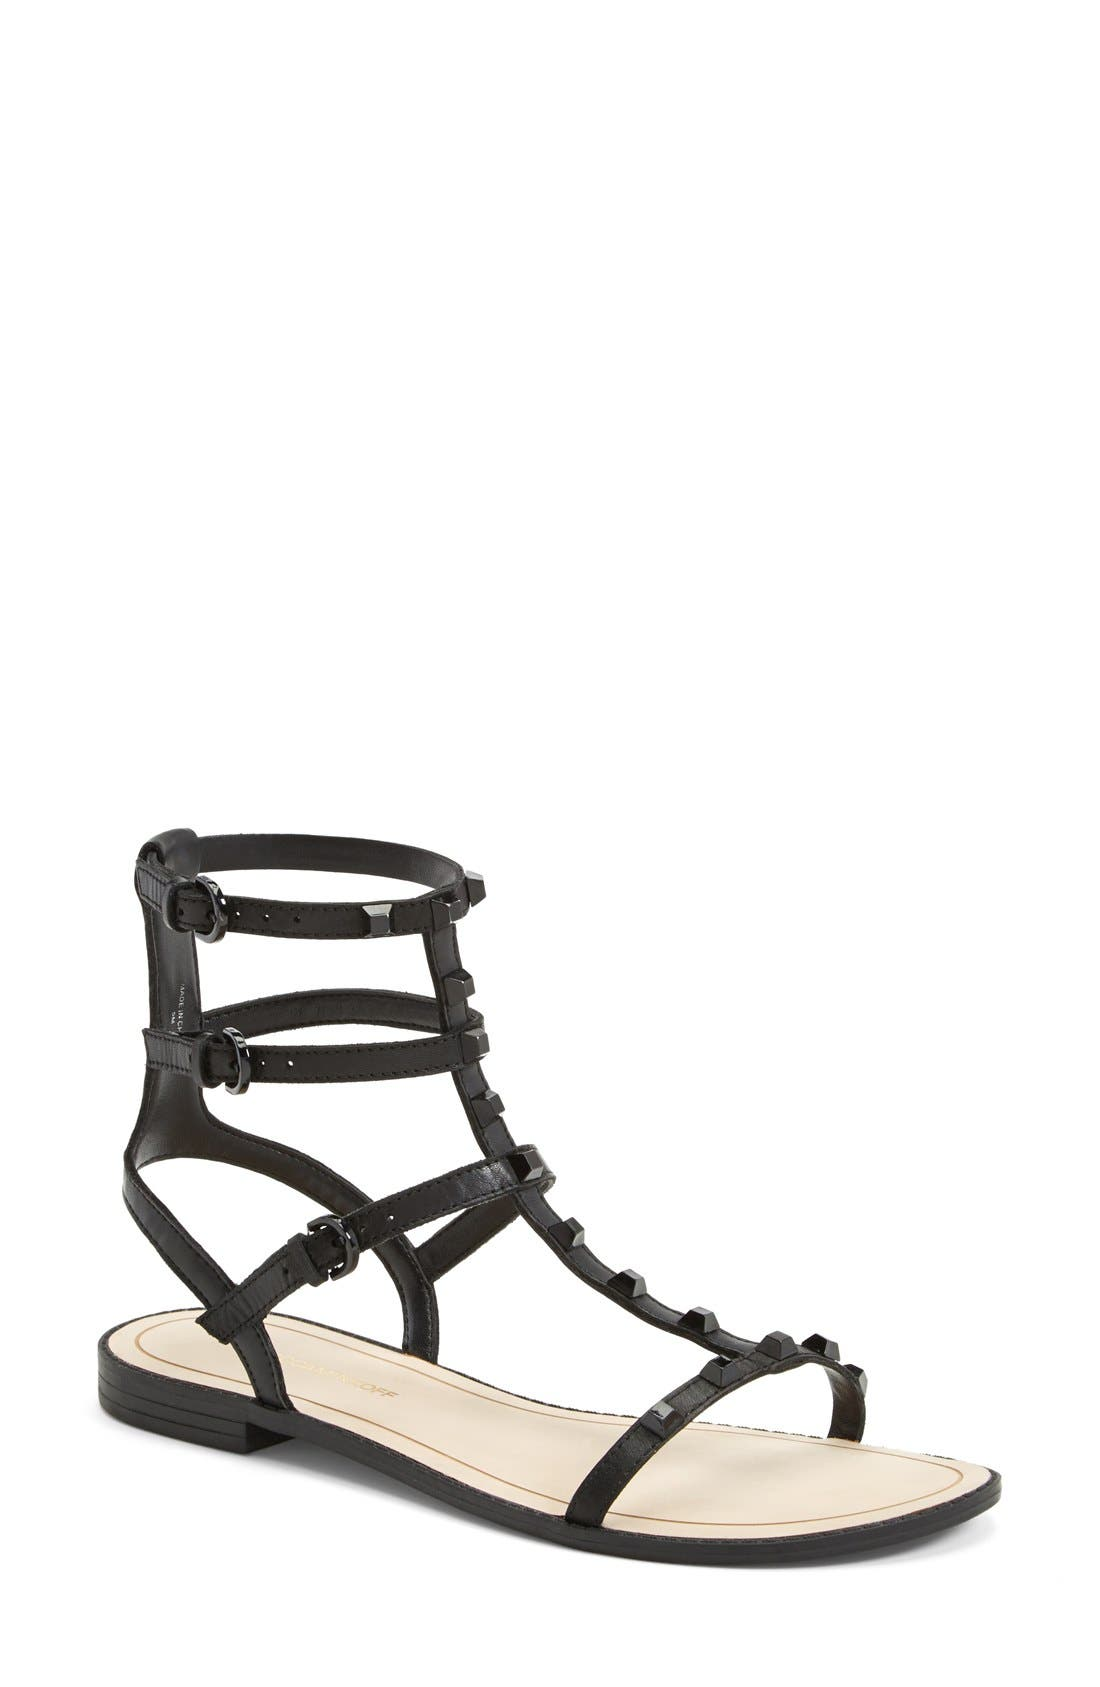 'Georgina' Studded Leather Sandal,                         Main,                         color, Black